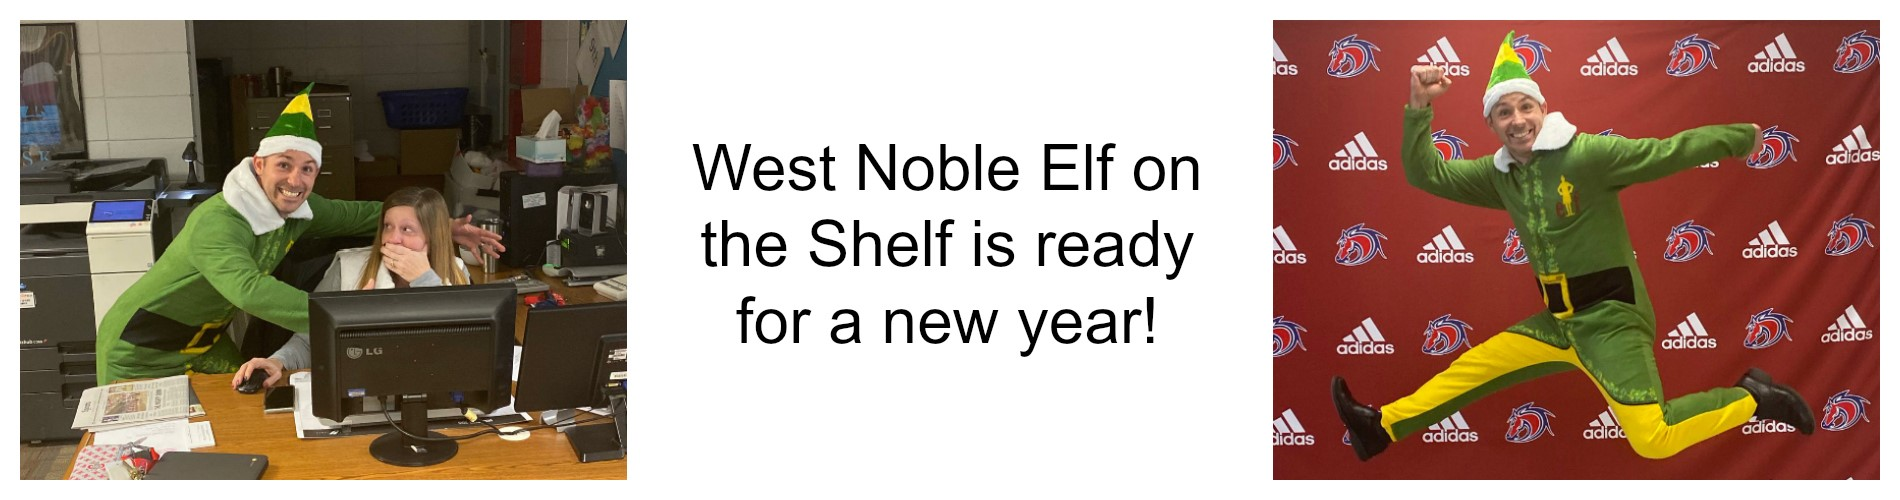 West Noble Elf on a Shelf is ready for a new year.